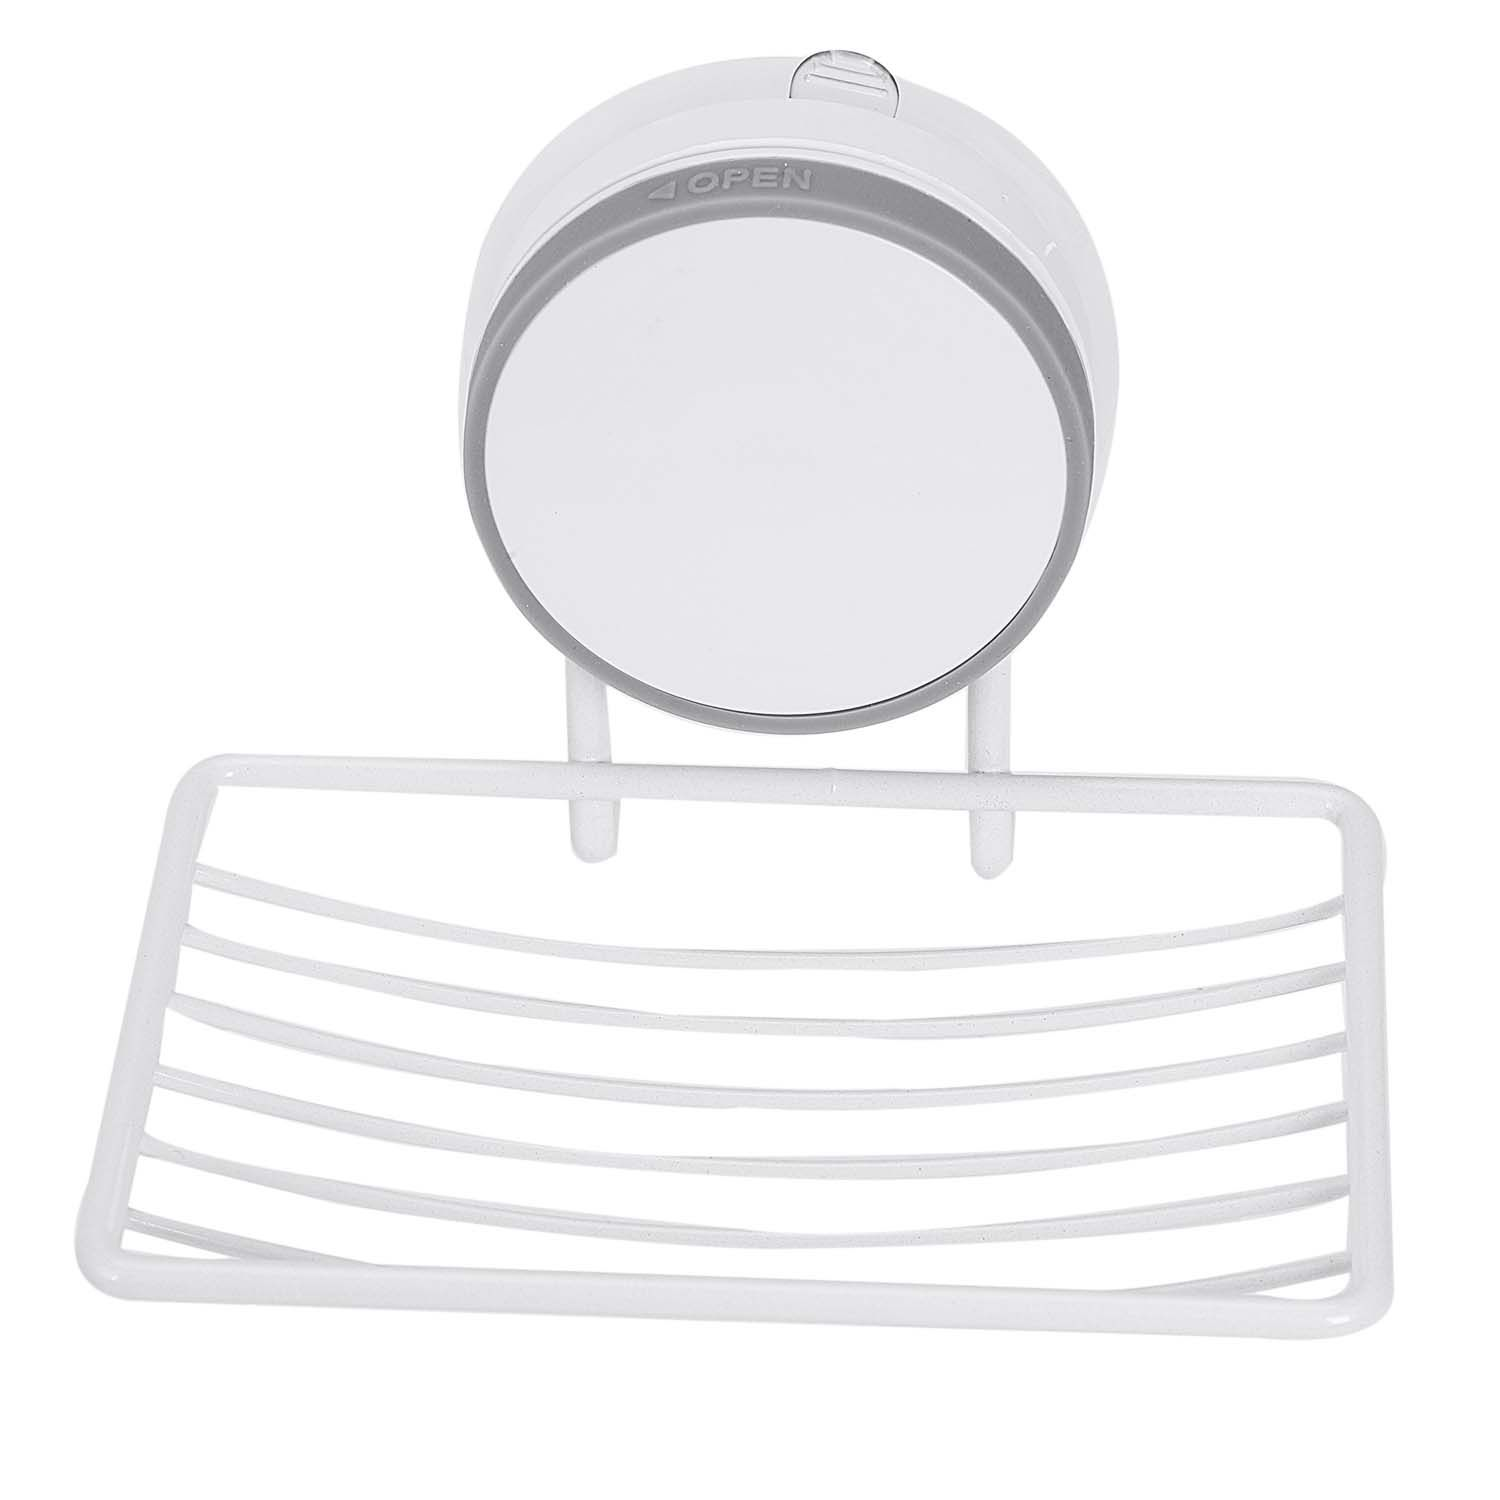 Promotion! White + Gray Soap Dish Holder, Soap Storage Saver Wall Mounted, Reusable, Kitchen Sink Bathroom Shower Accessories: